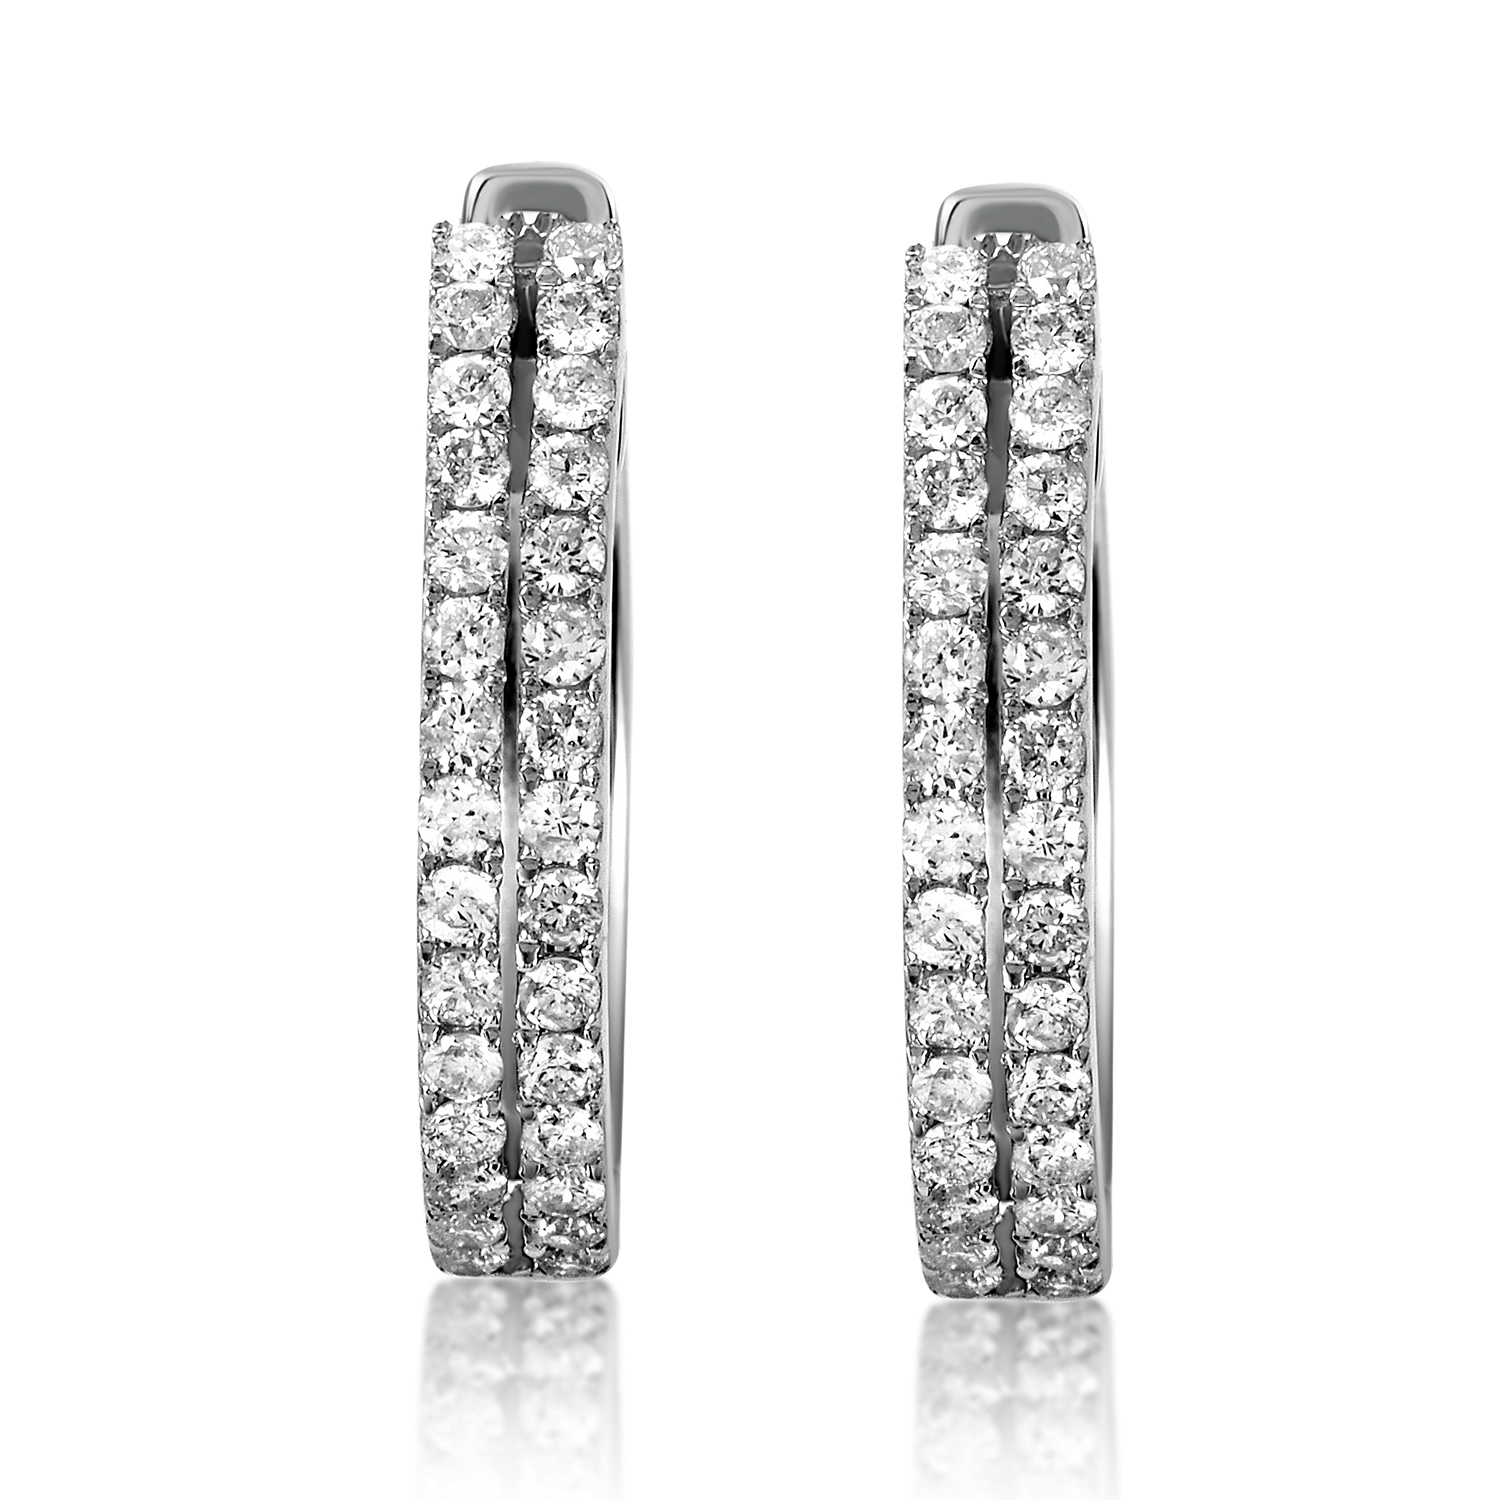 Women's 14K White Gold Diamond Hoop Earrings AER-12696W